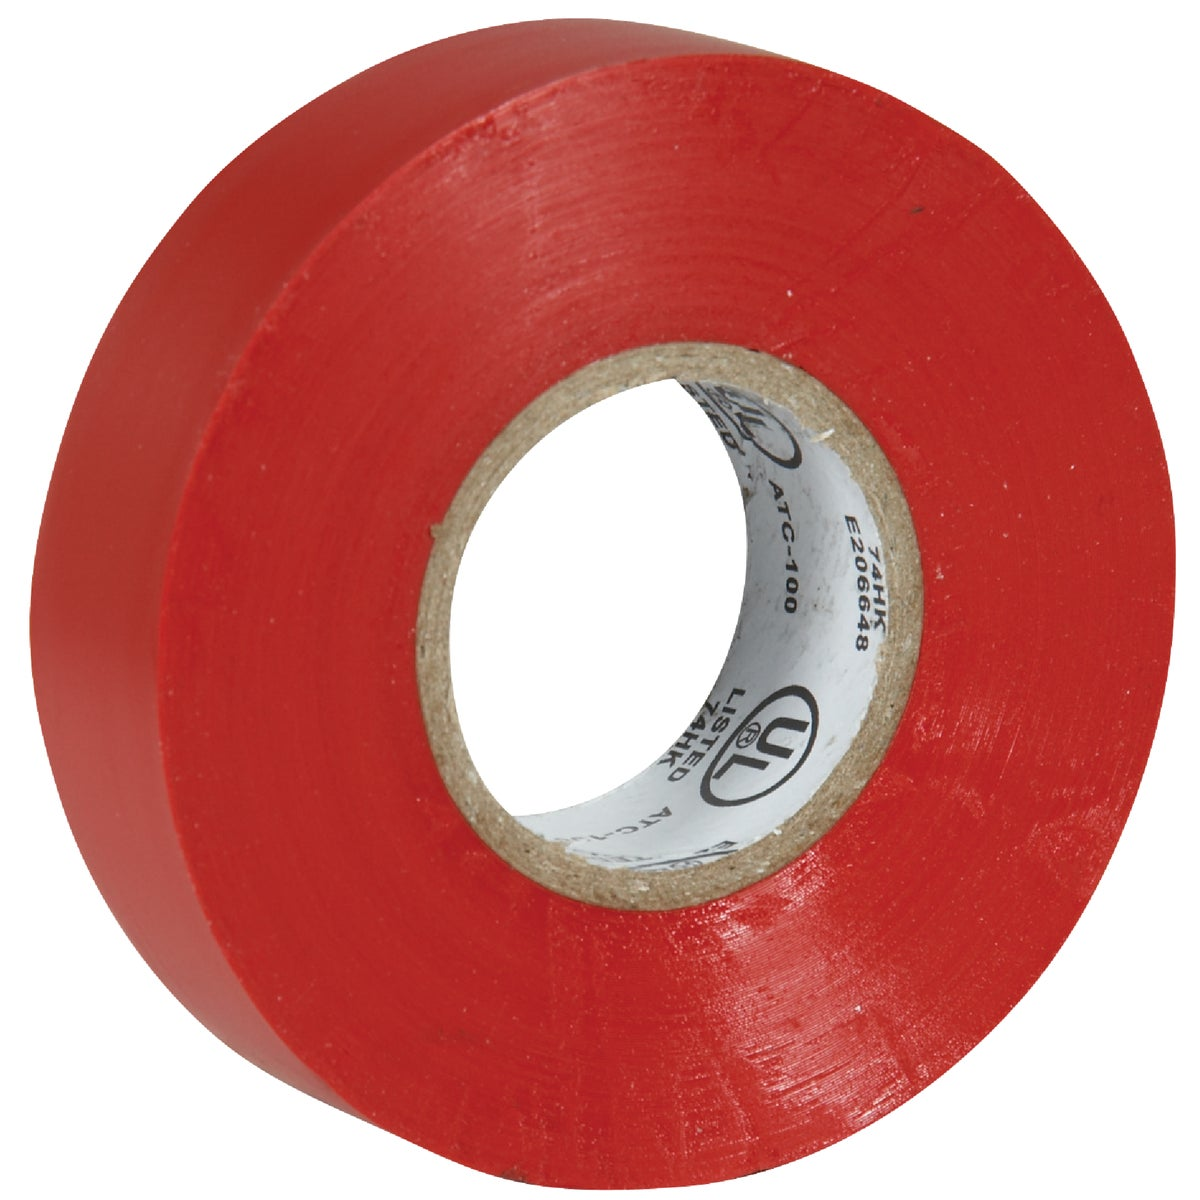 RED ELECTRICAL TAPE - 528234 by Do it Best